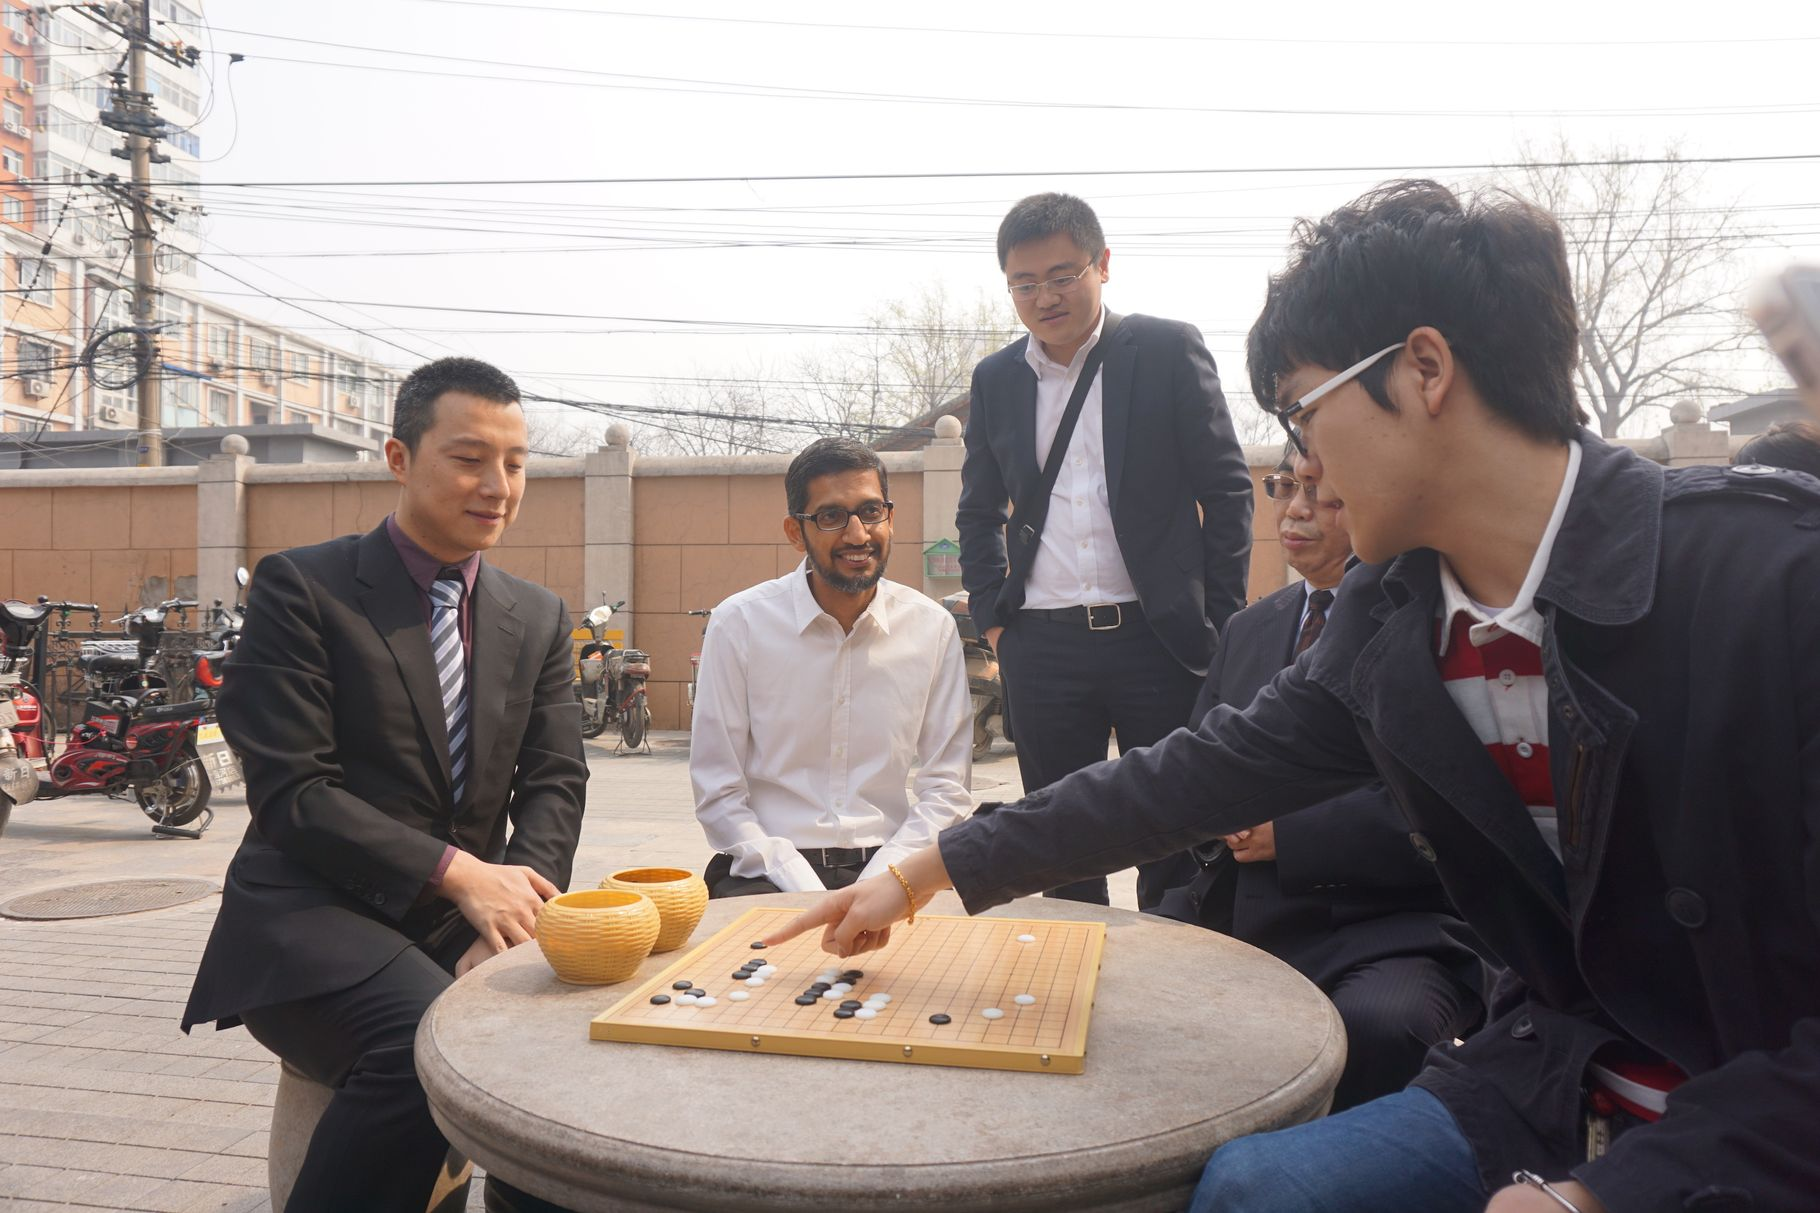 Google's AlphaGo AI has defeated the world number 1 Go player